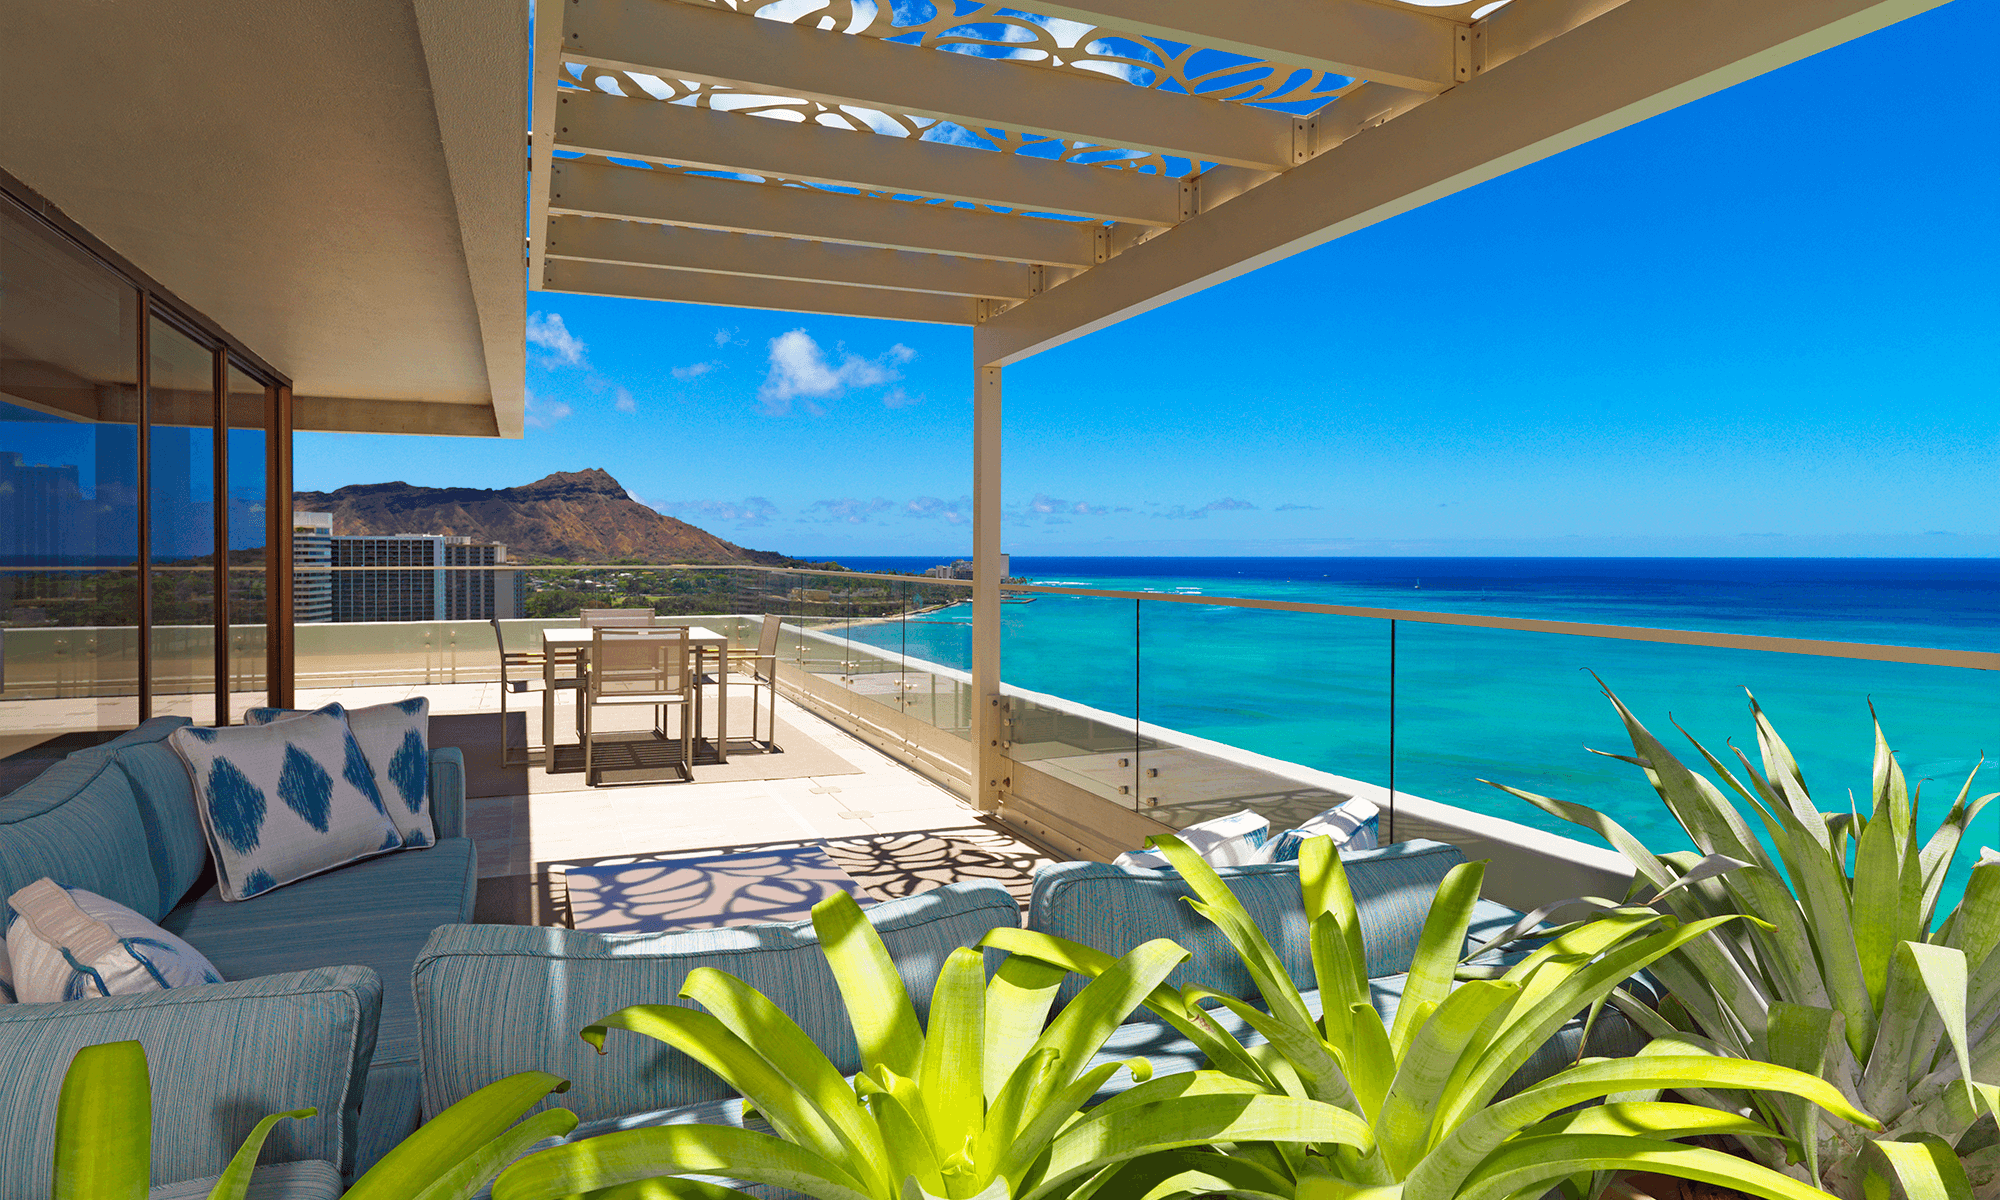 Moana Surfrider penthouse balcony Architecture, Interior Design, and layout